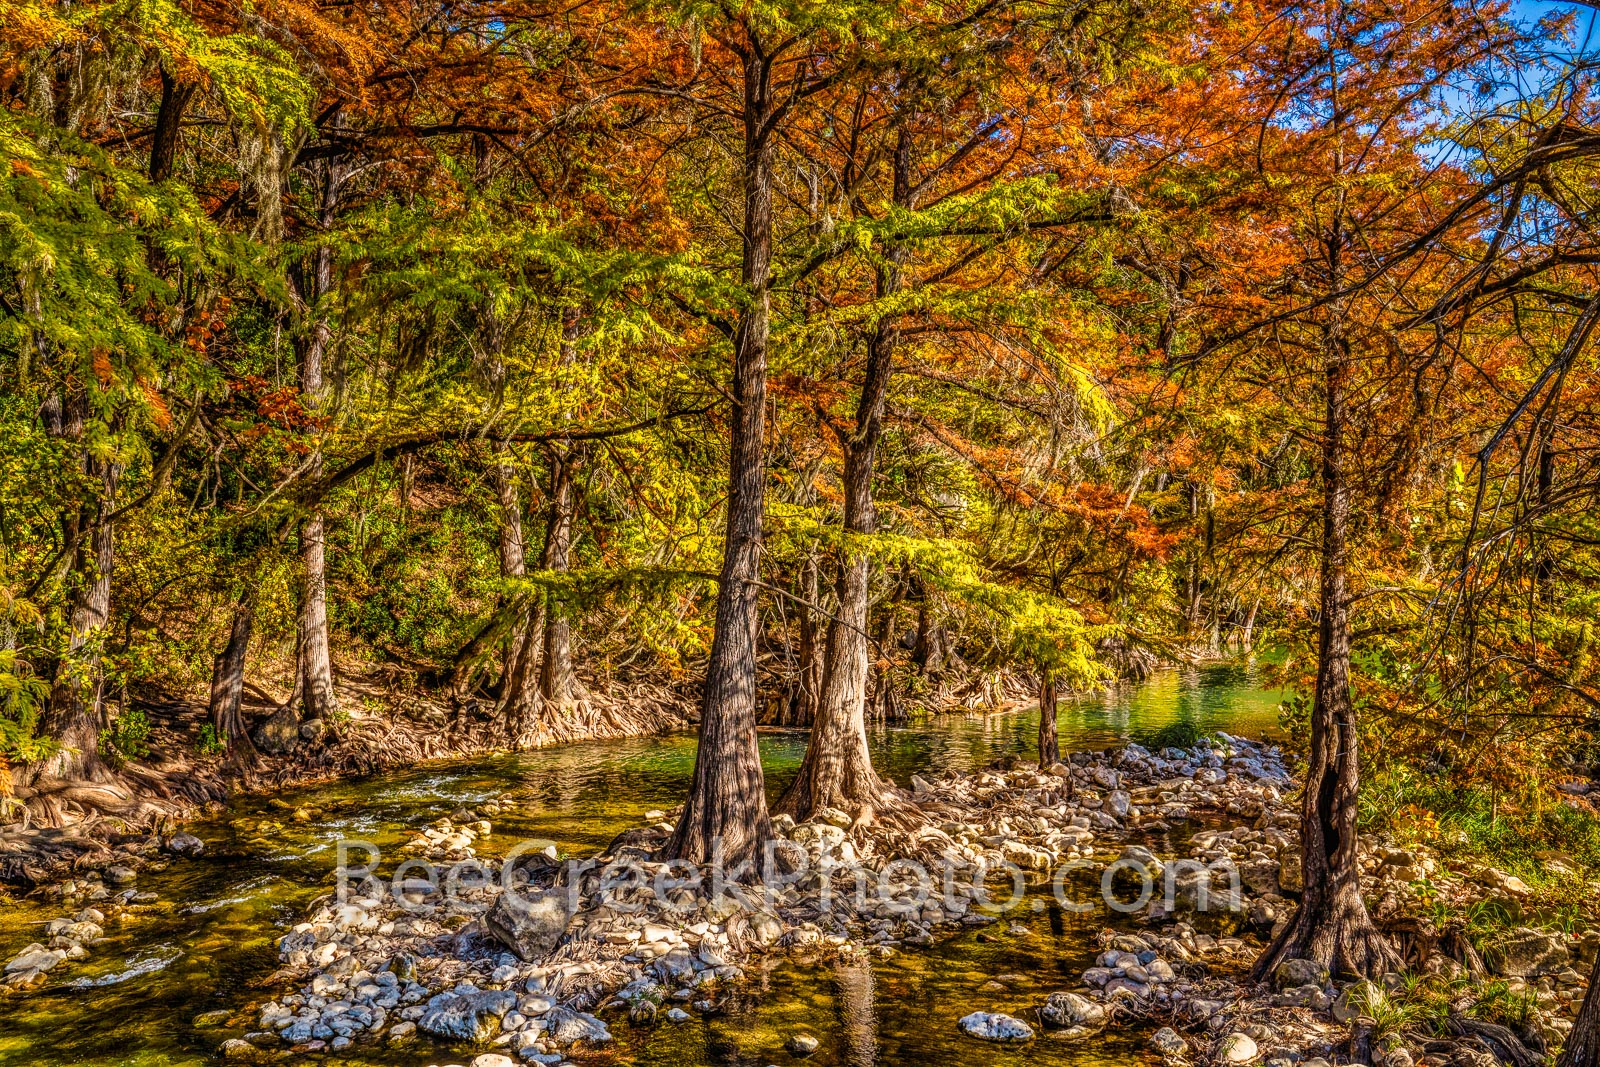 Fall Scenery along the Guadalupe River - There are many places along the guadalupe river in the Texas hill country to find fall...